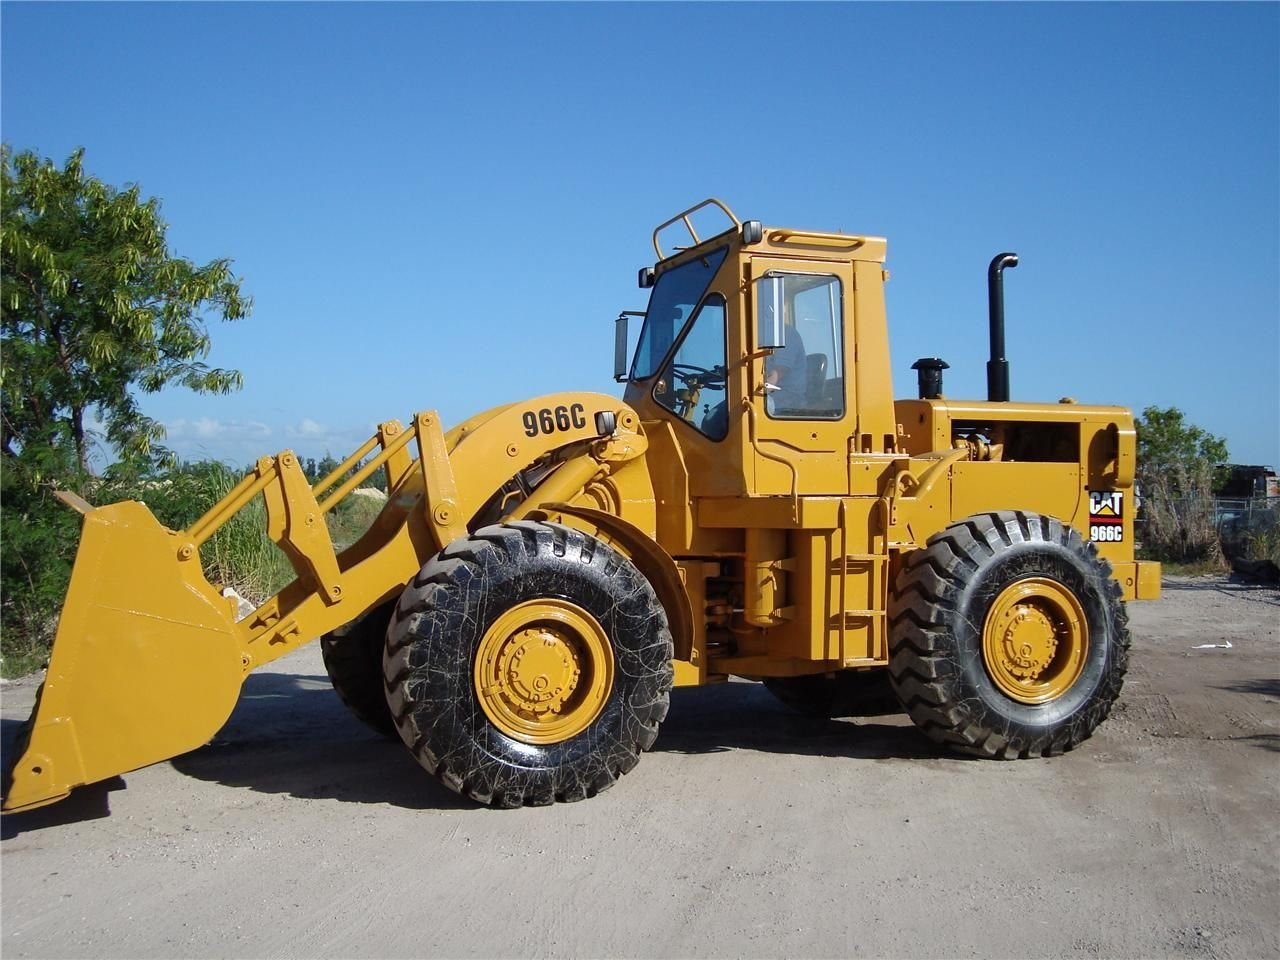 Caterpillar 966 photo - 1